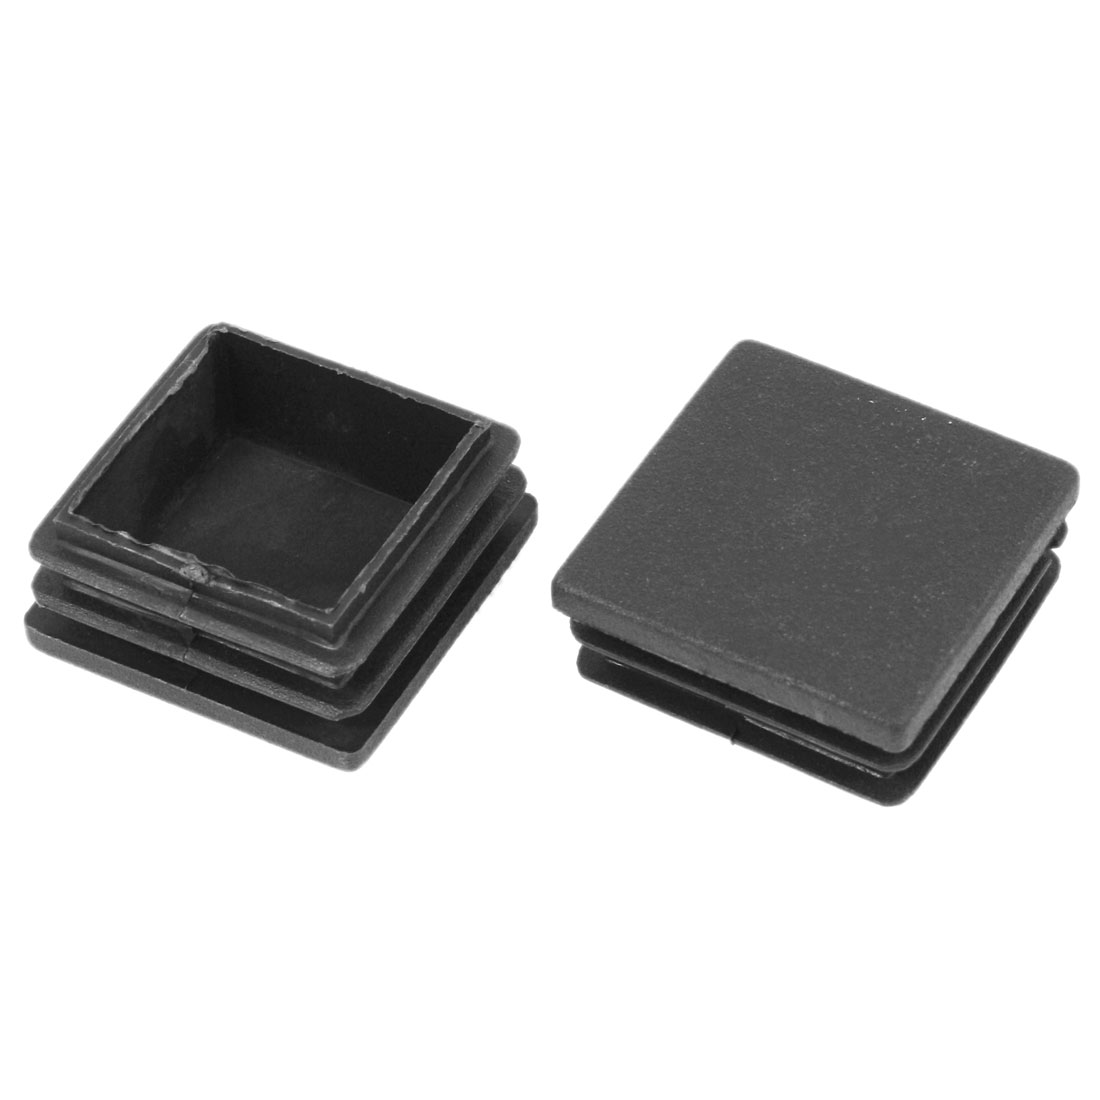 2 Pieces 39mm x 39mm Plastic Blanking End Caps Cover Square Tubing Tube Pipe Insert Black